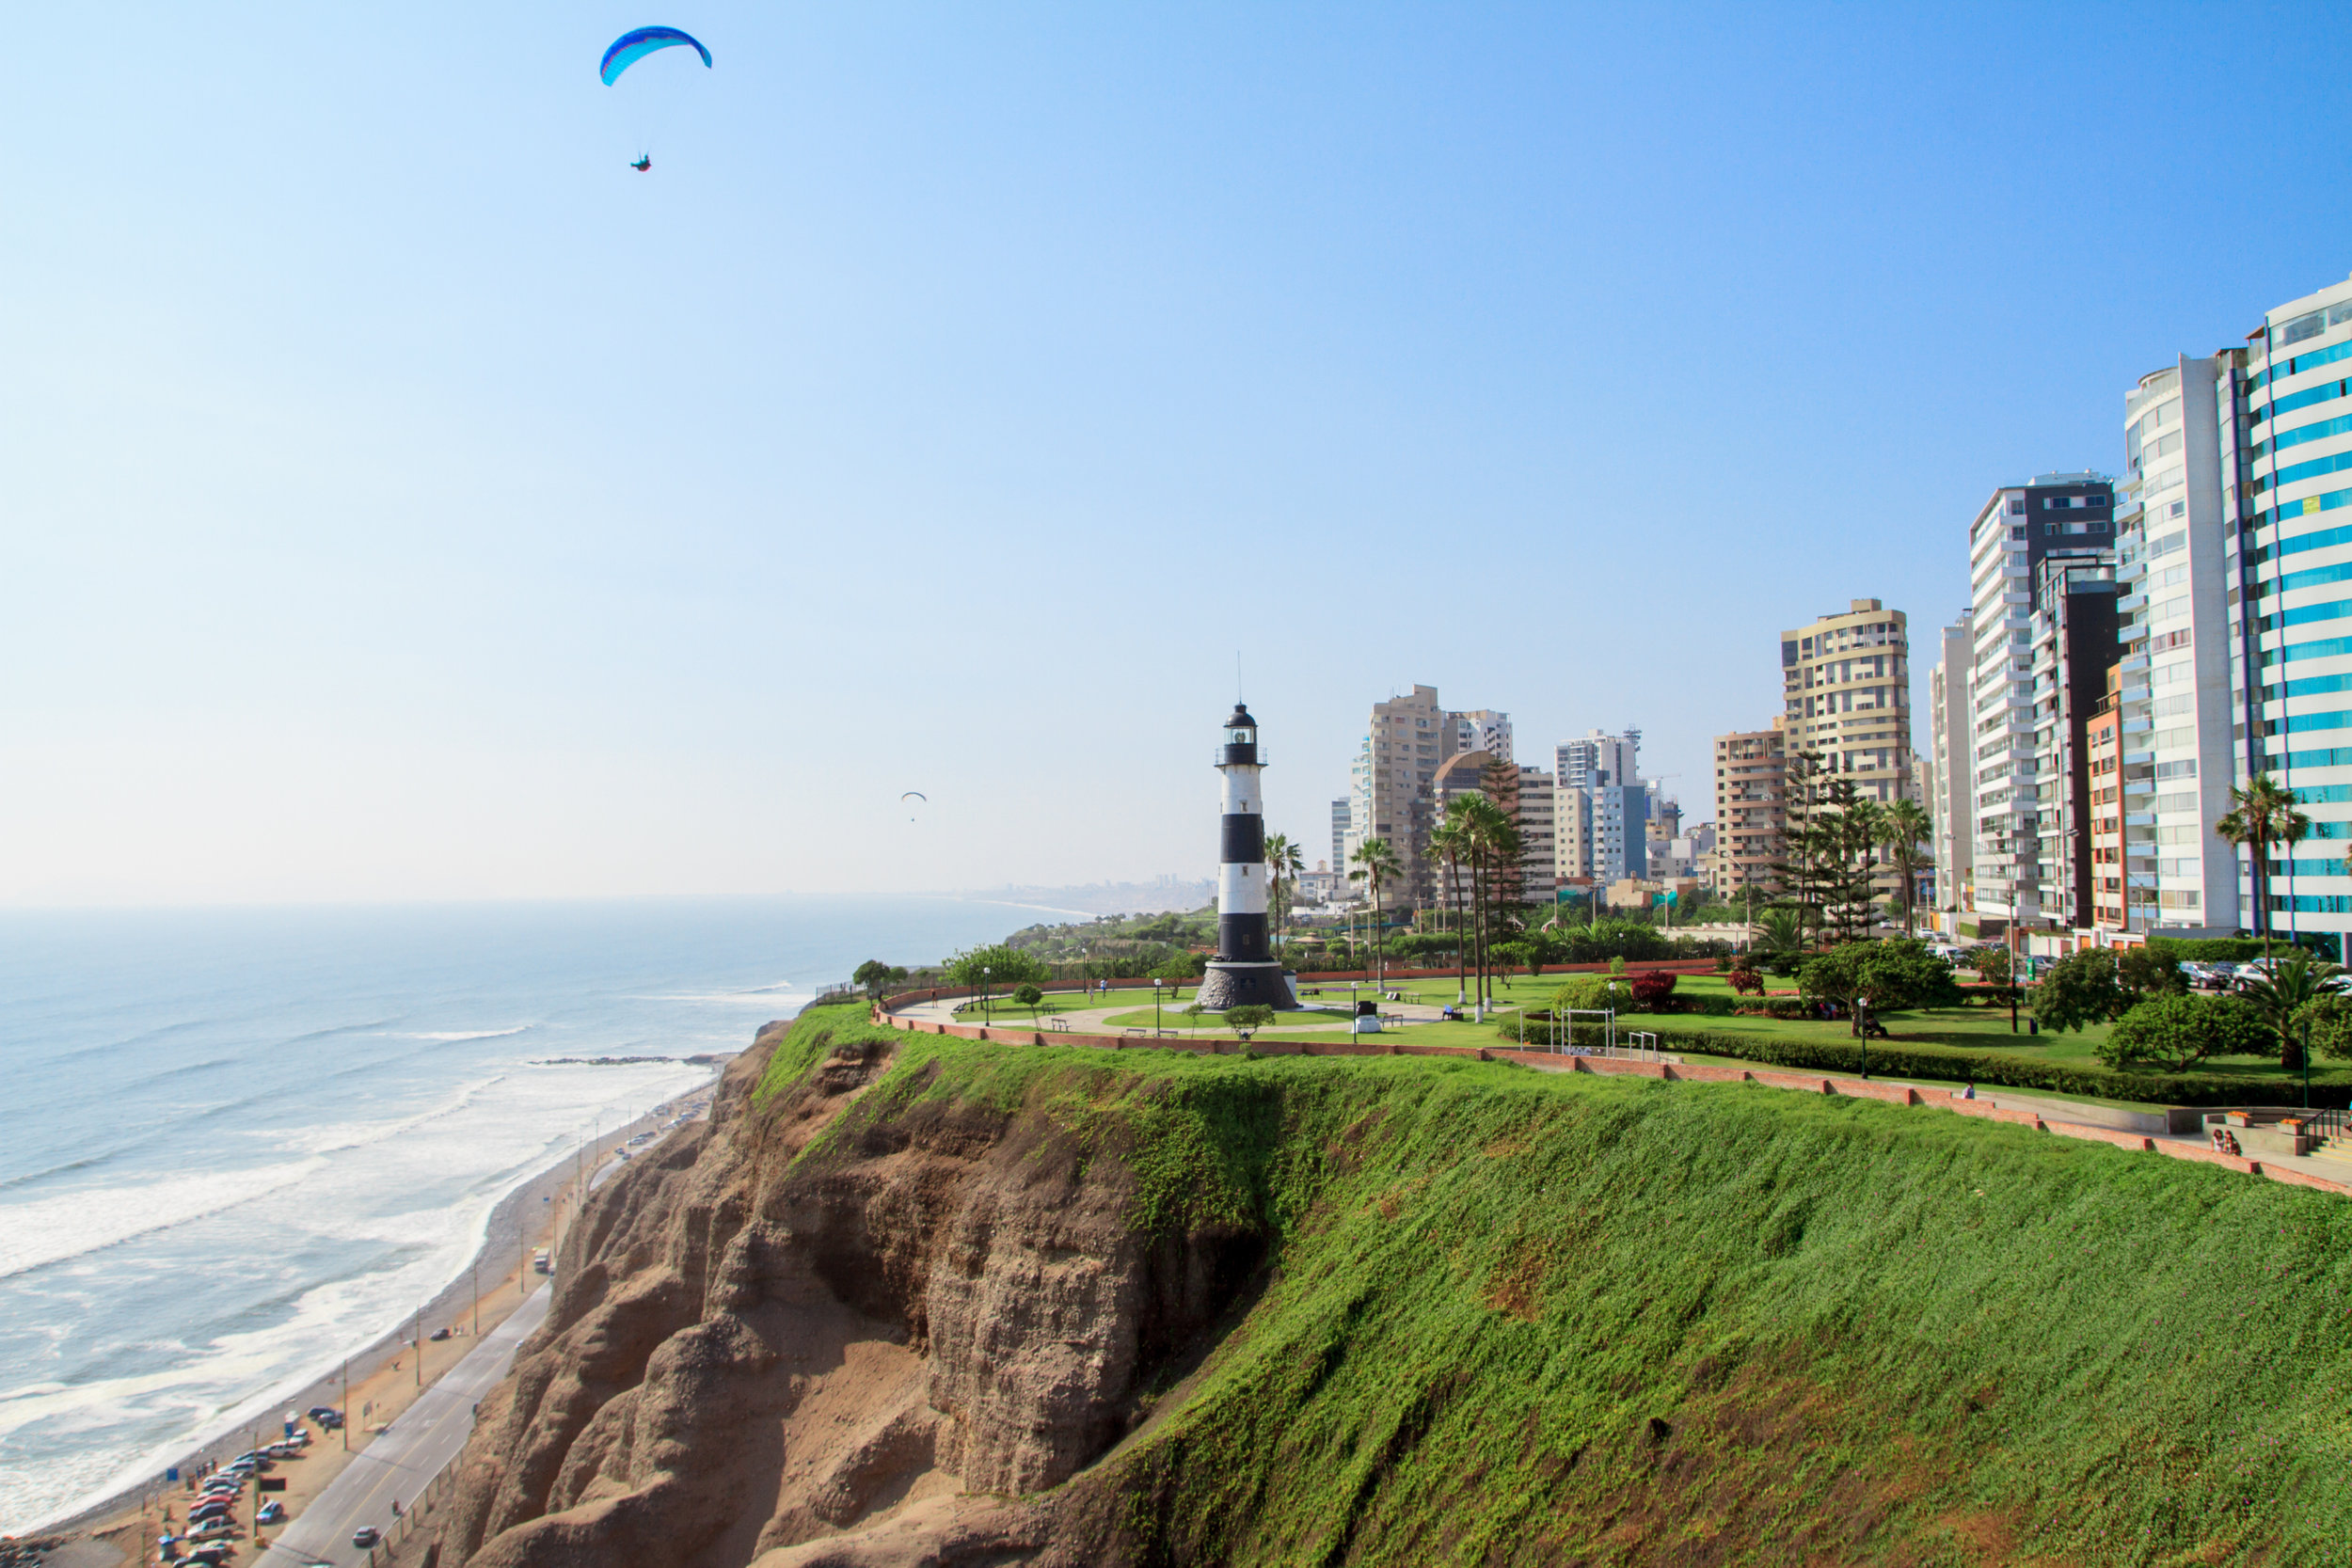 Peru  As you find yourself longing for a sunny sky head on over to Peru in April for the ideal summer temperature and romantic bouts of rain. From the sprawling beaches in Lima where you can enjoy some kick-ass parties to bonding with nature in Machu Picchu, this place has it all.